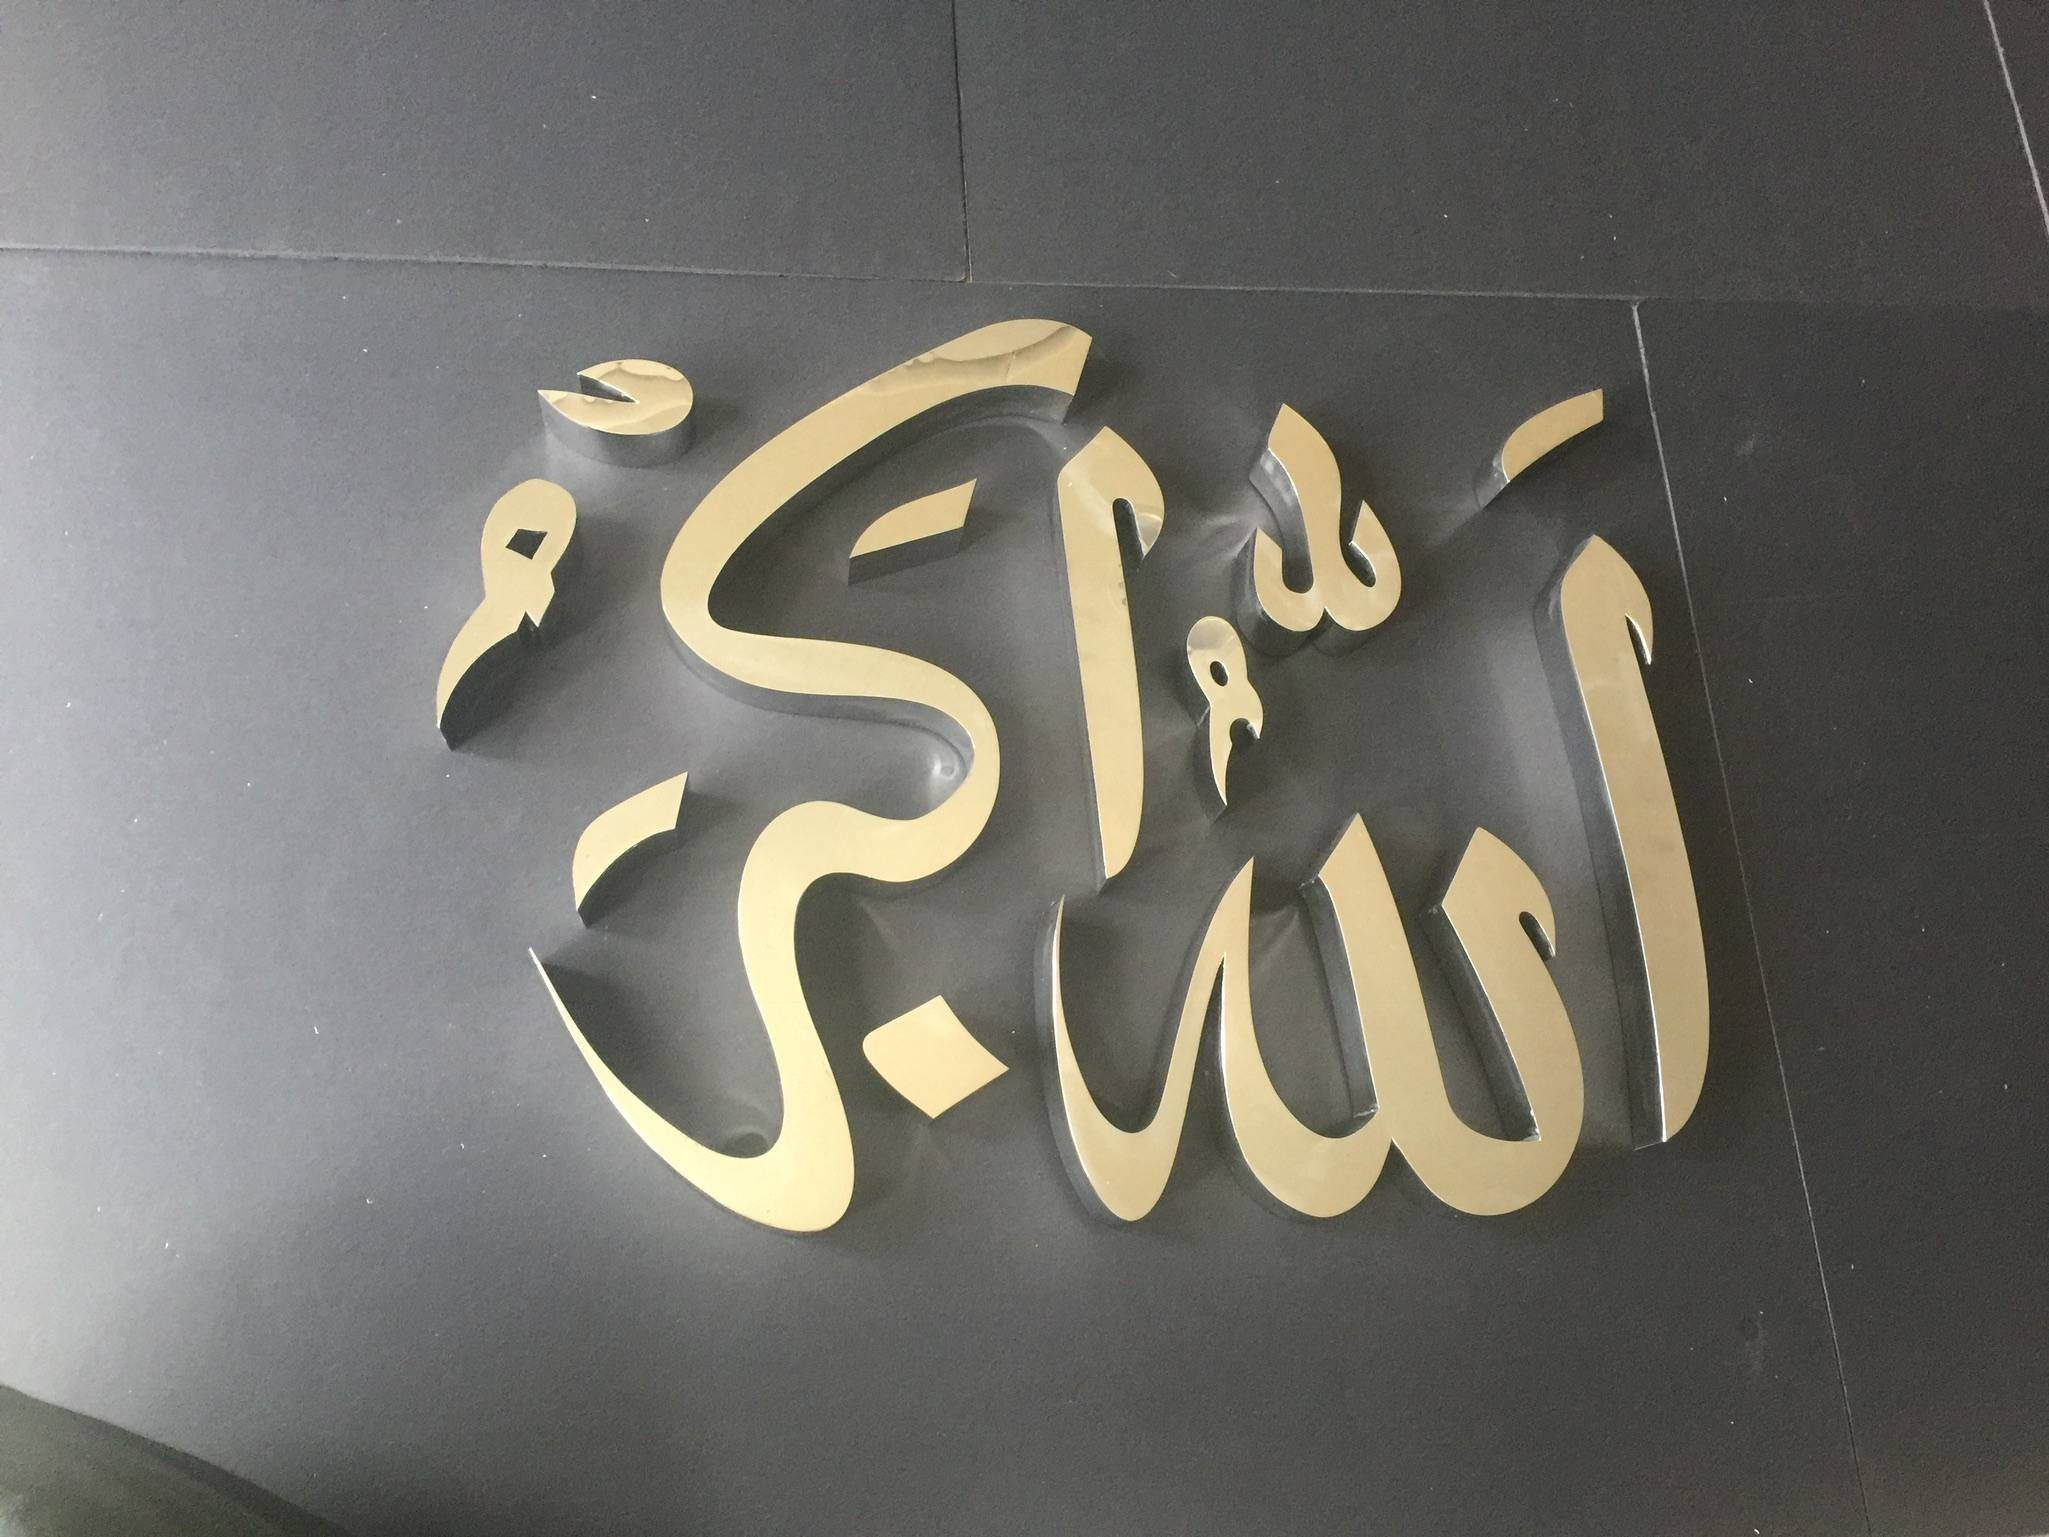 Ayatul Kursi  Stainless Steel Modern Islamic Wall Art Arabic Regarding Most Recently Released Islamic Metal Wall Art (View 2 of 20)